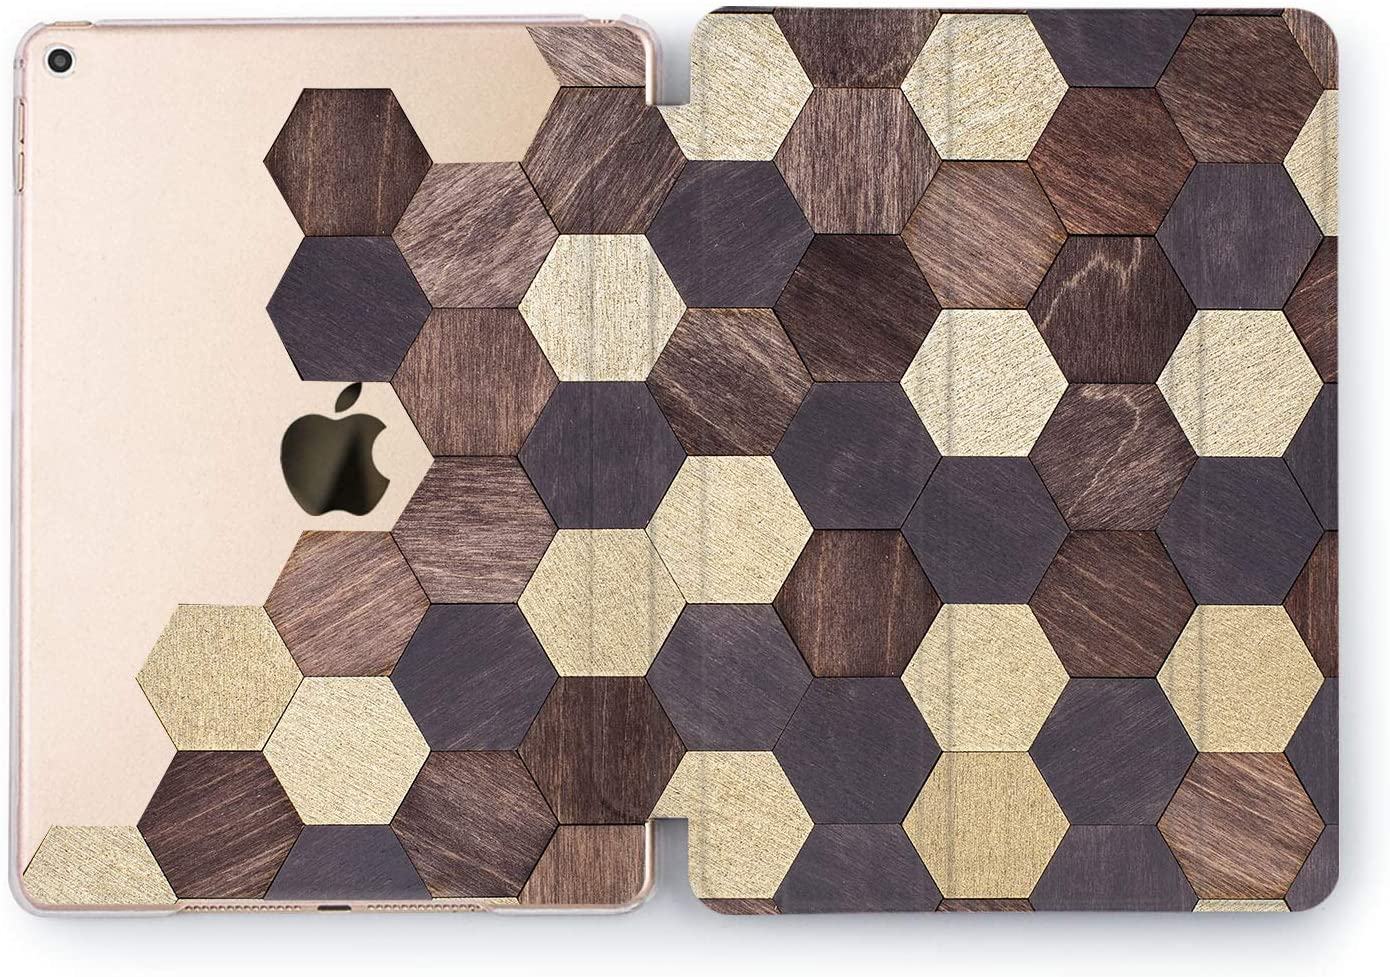 Wonder Wild Case Compatible with Apple iPad Abstract Tablet 5th 6th Gen Mini 1 2 3 4 Air 2 Pro 10.5 12.9 11 10.2 9.7 inch Cover Wood Mosaic Part Shape Hexagon Unique Plank Brown Beige Tree Real